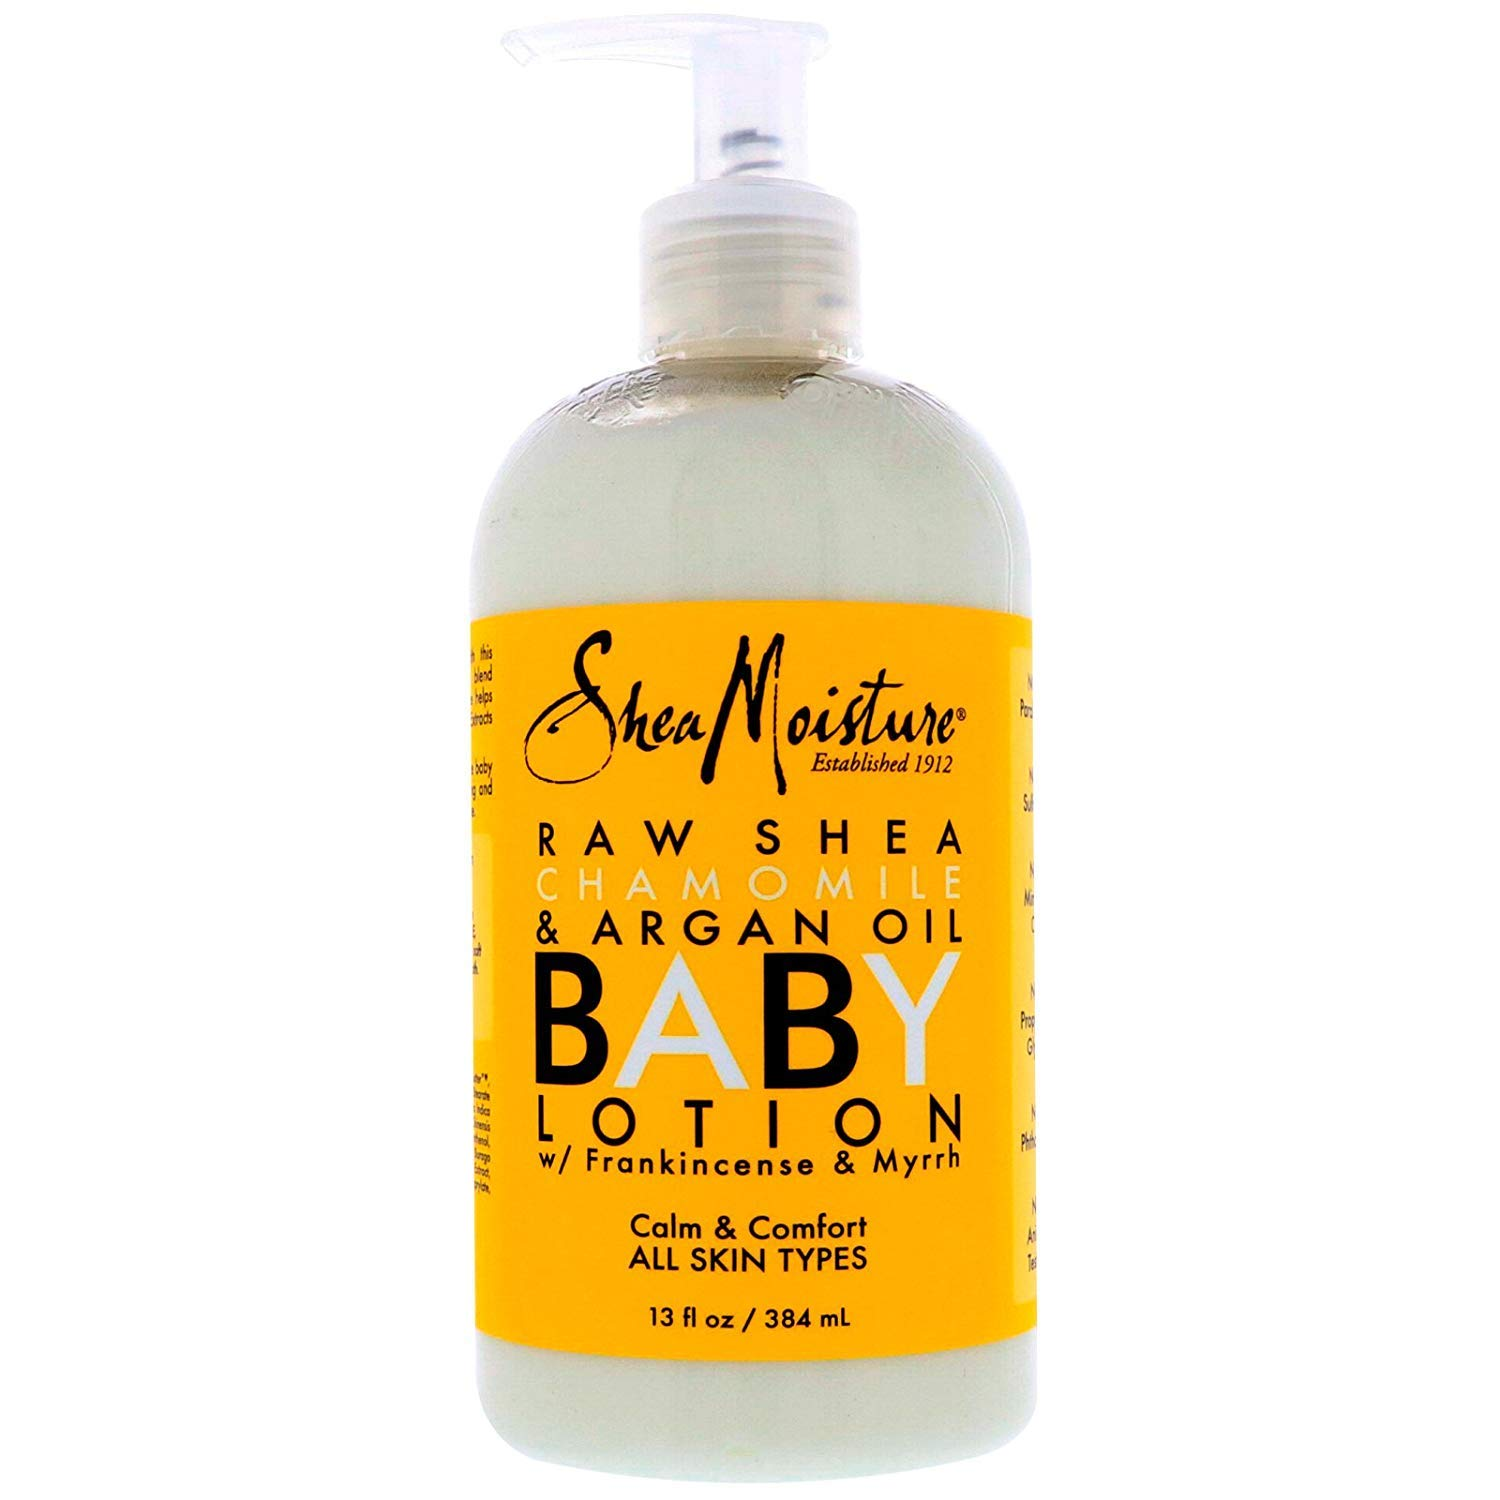 Shea Moisture Raw Shea Chamomile & Argan Oil Baby Lotion 13 oz (Pack of 2) by Shea Moisture